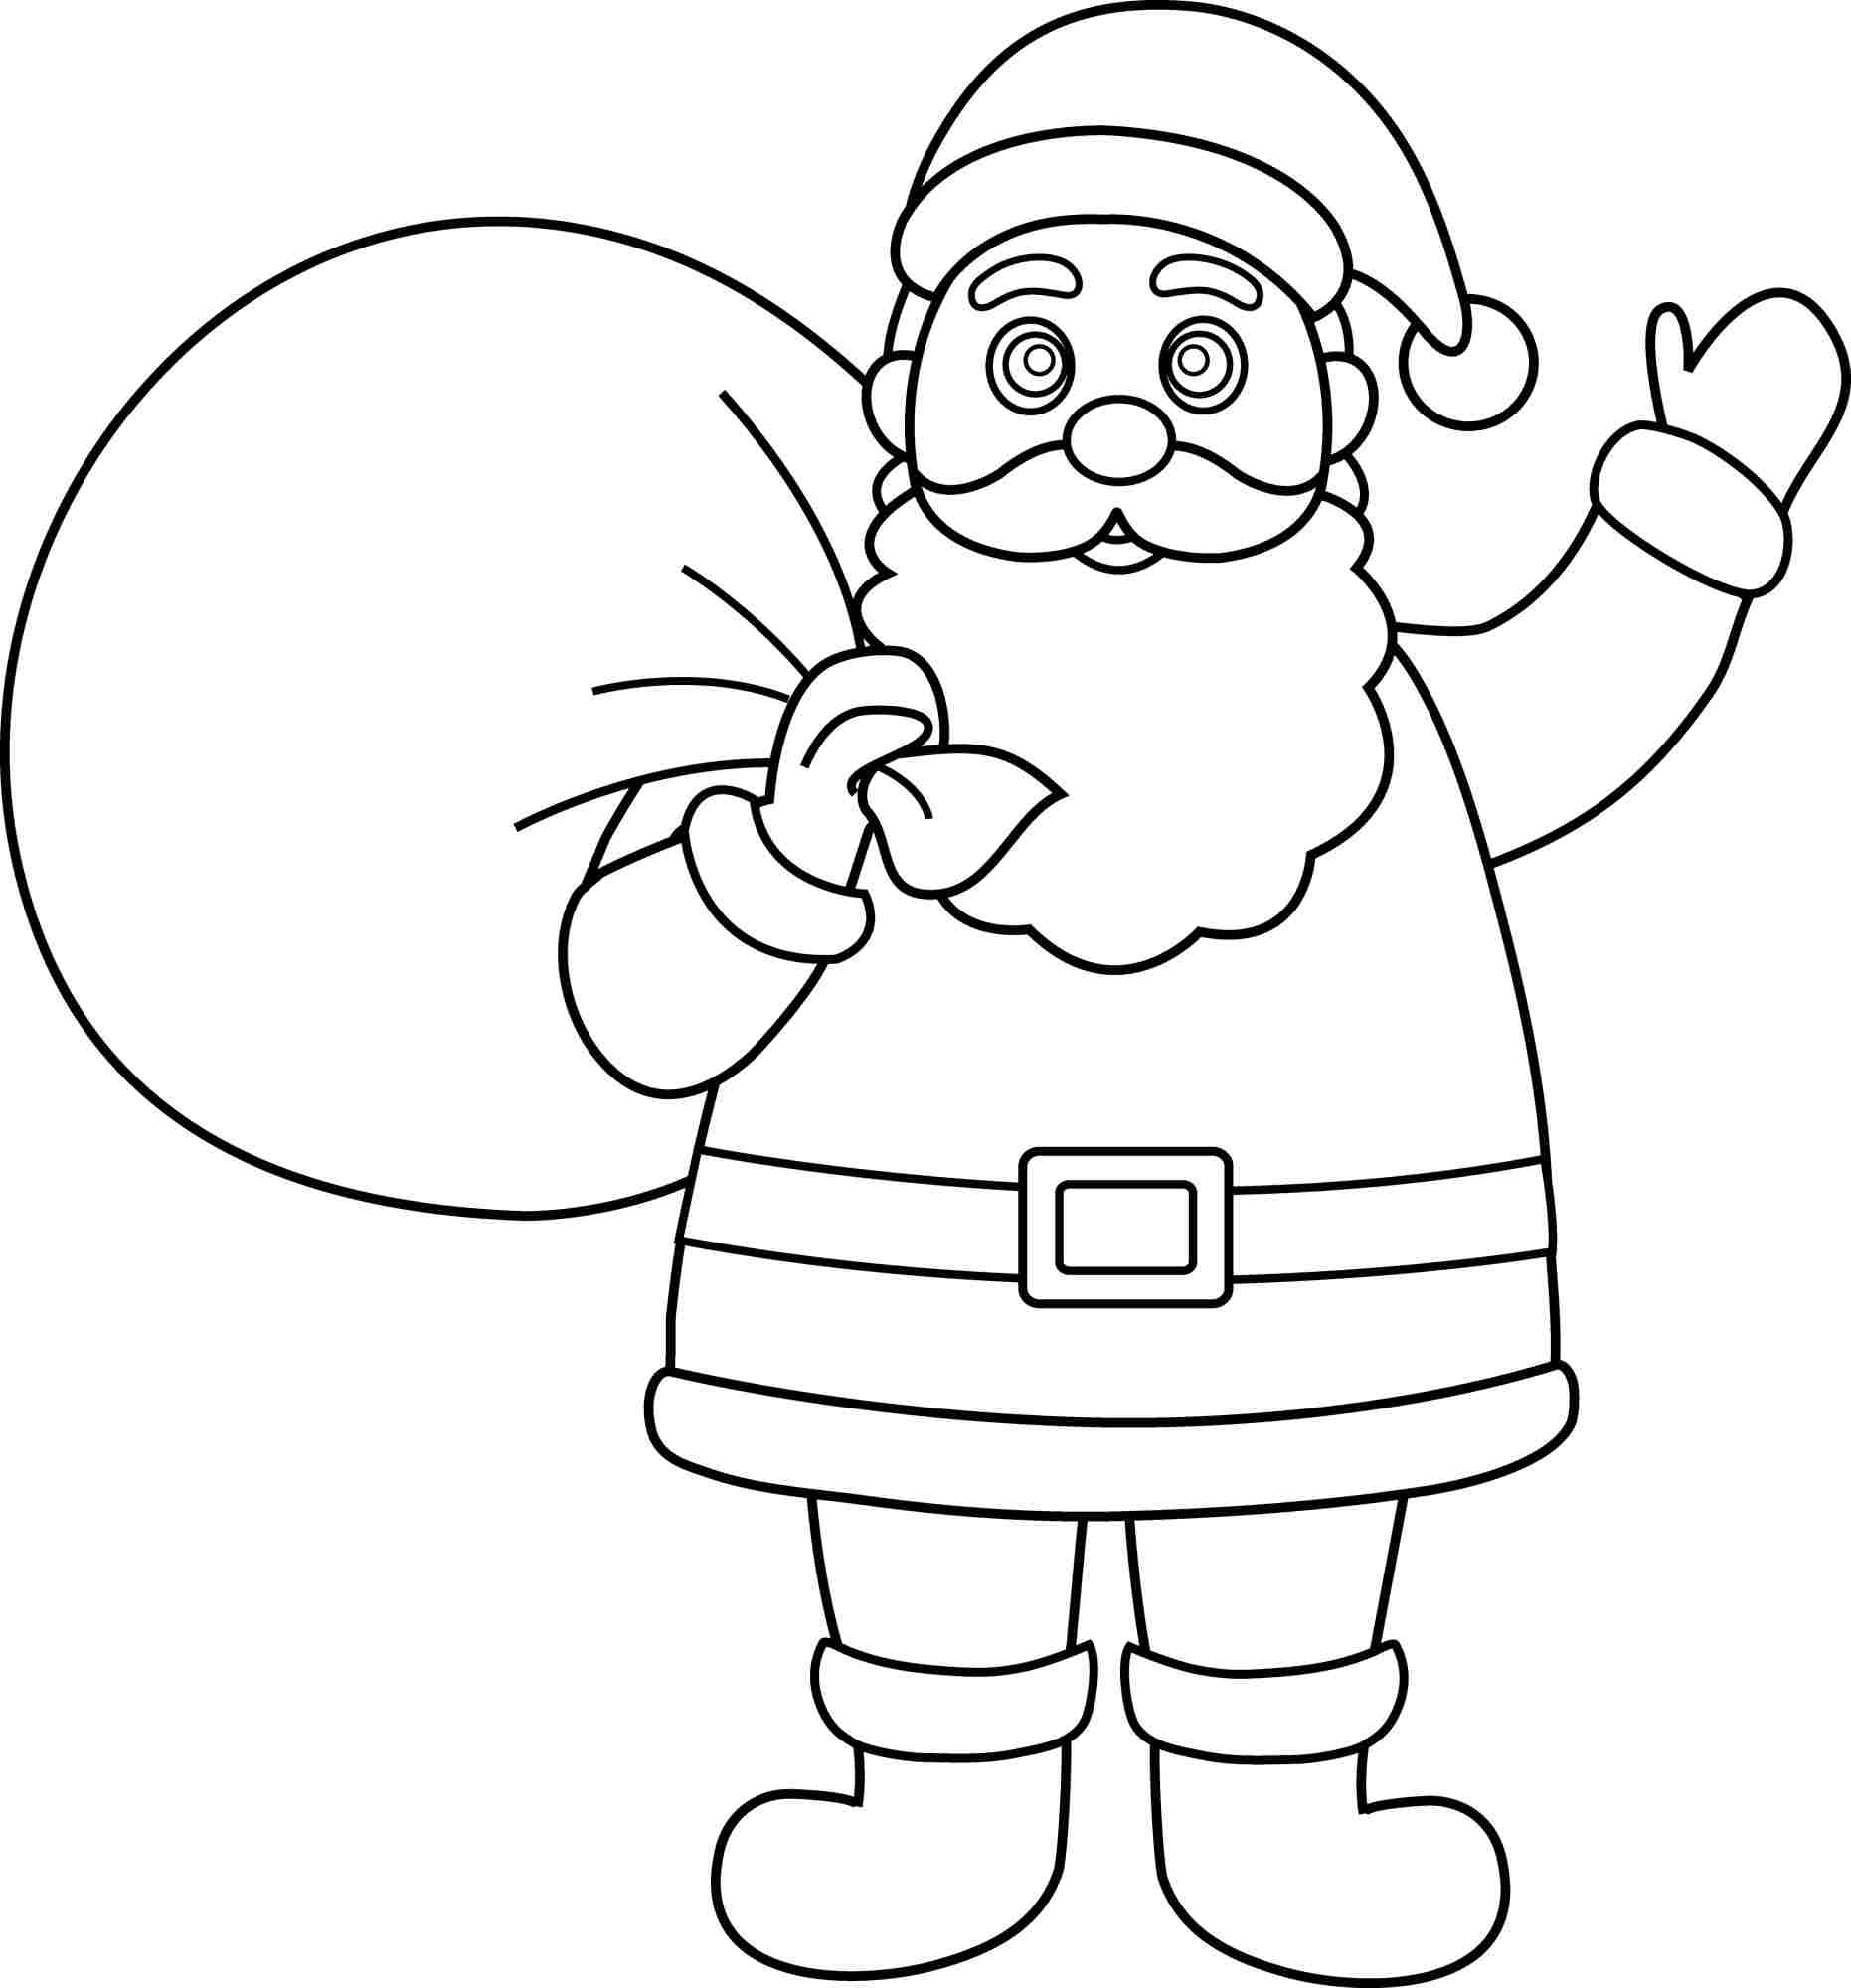 santa claus coloring pages - new santa claus coloring pages 16 for your free coloring kids with santa claus coloring pages